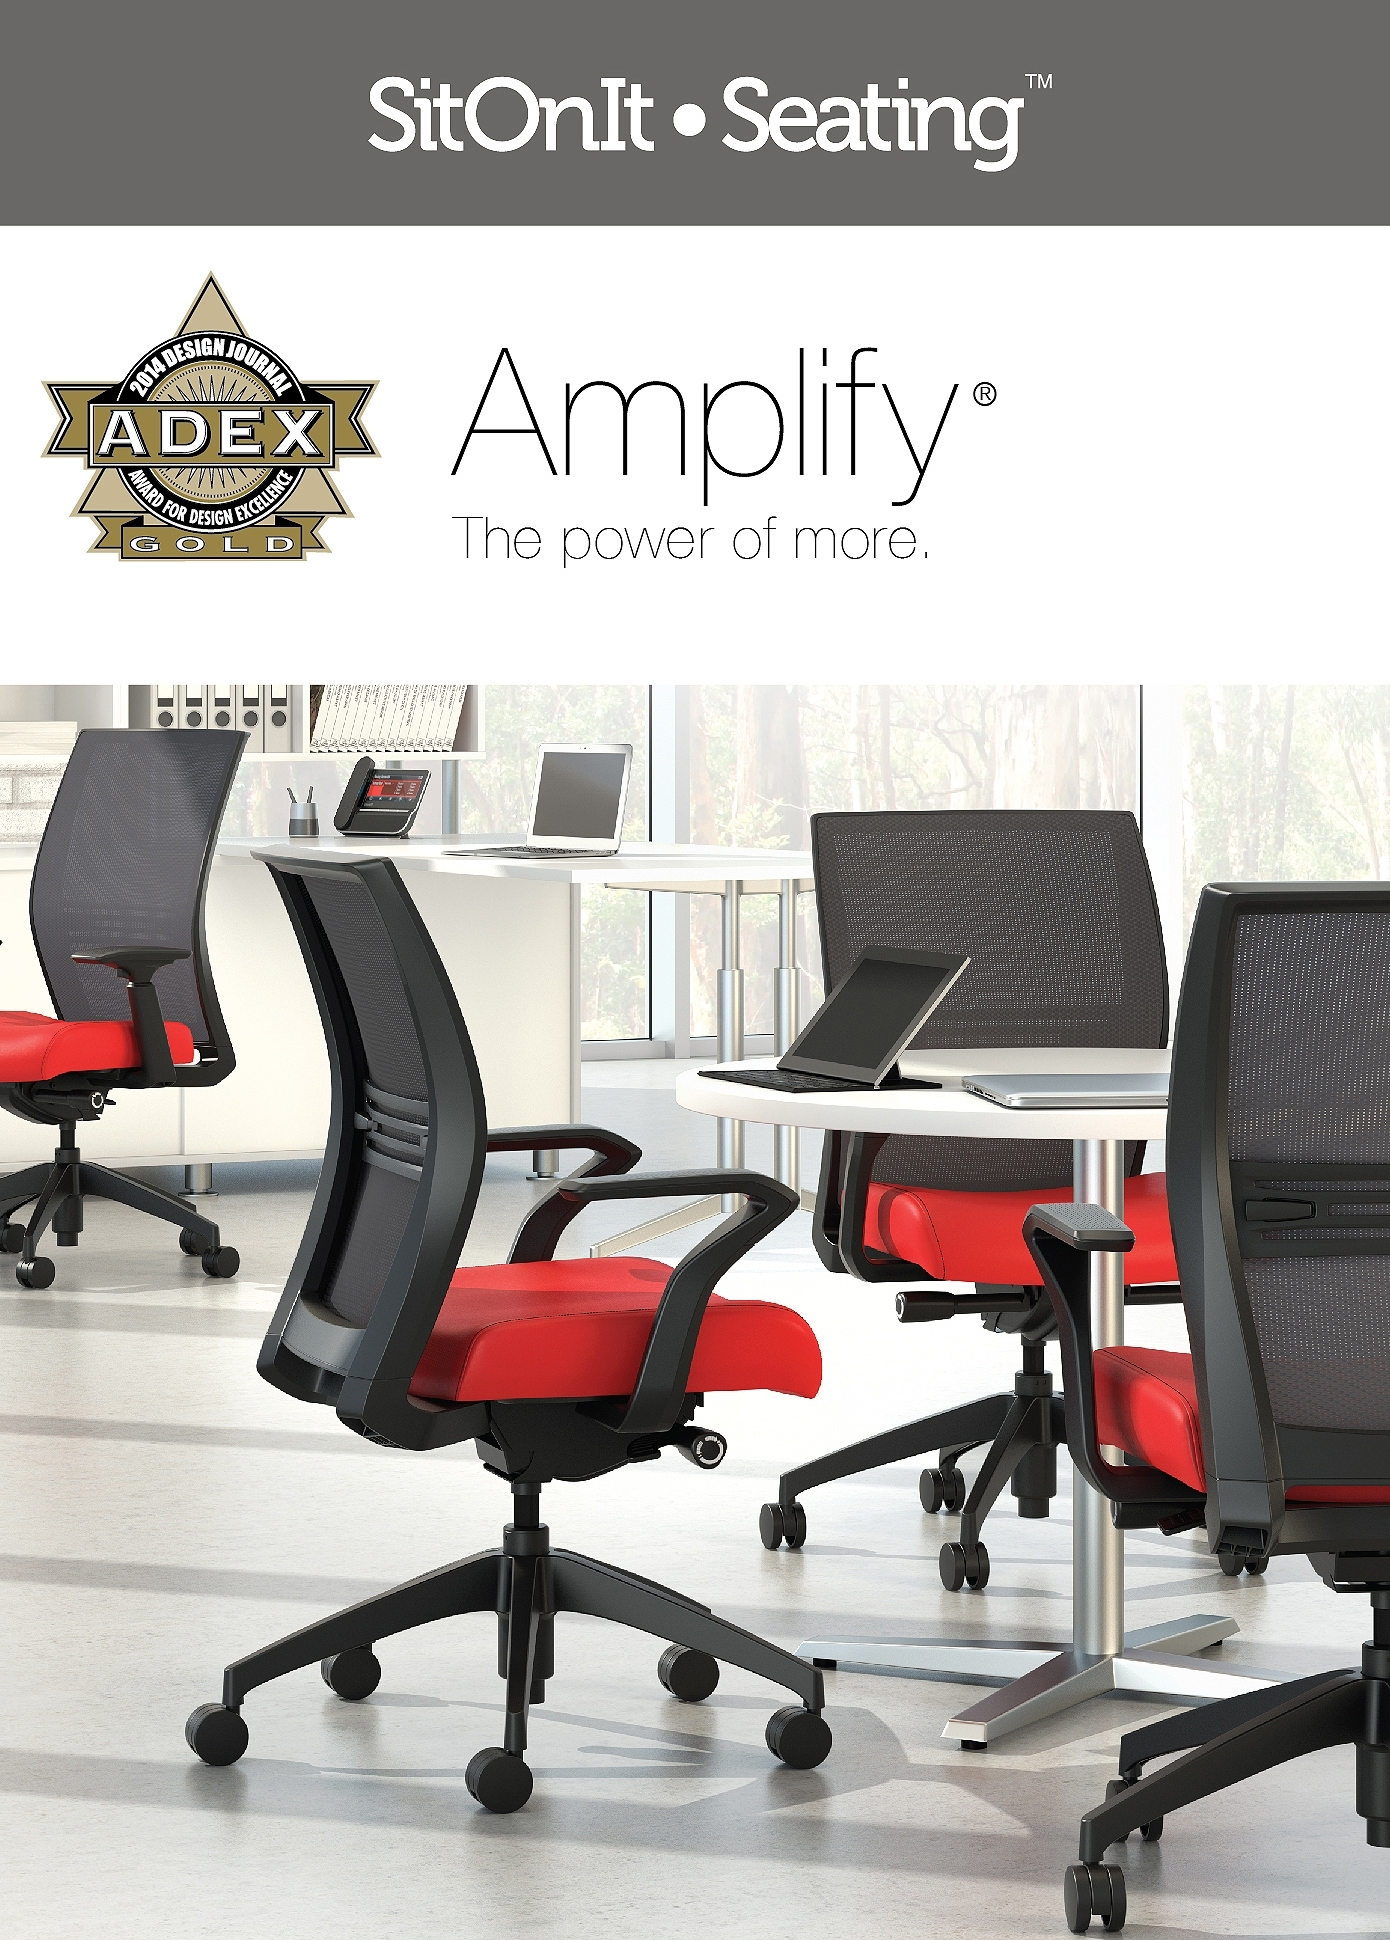 Superb Sitonit Seating Garners Three 2014 Awards For Design Beatyapartments Chair Design Images Beatyapartmentscom